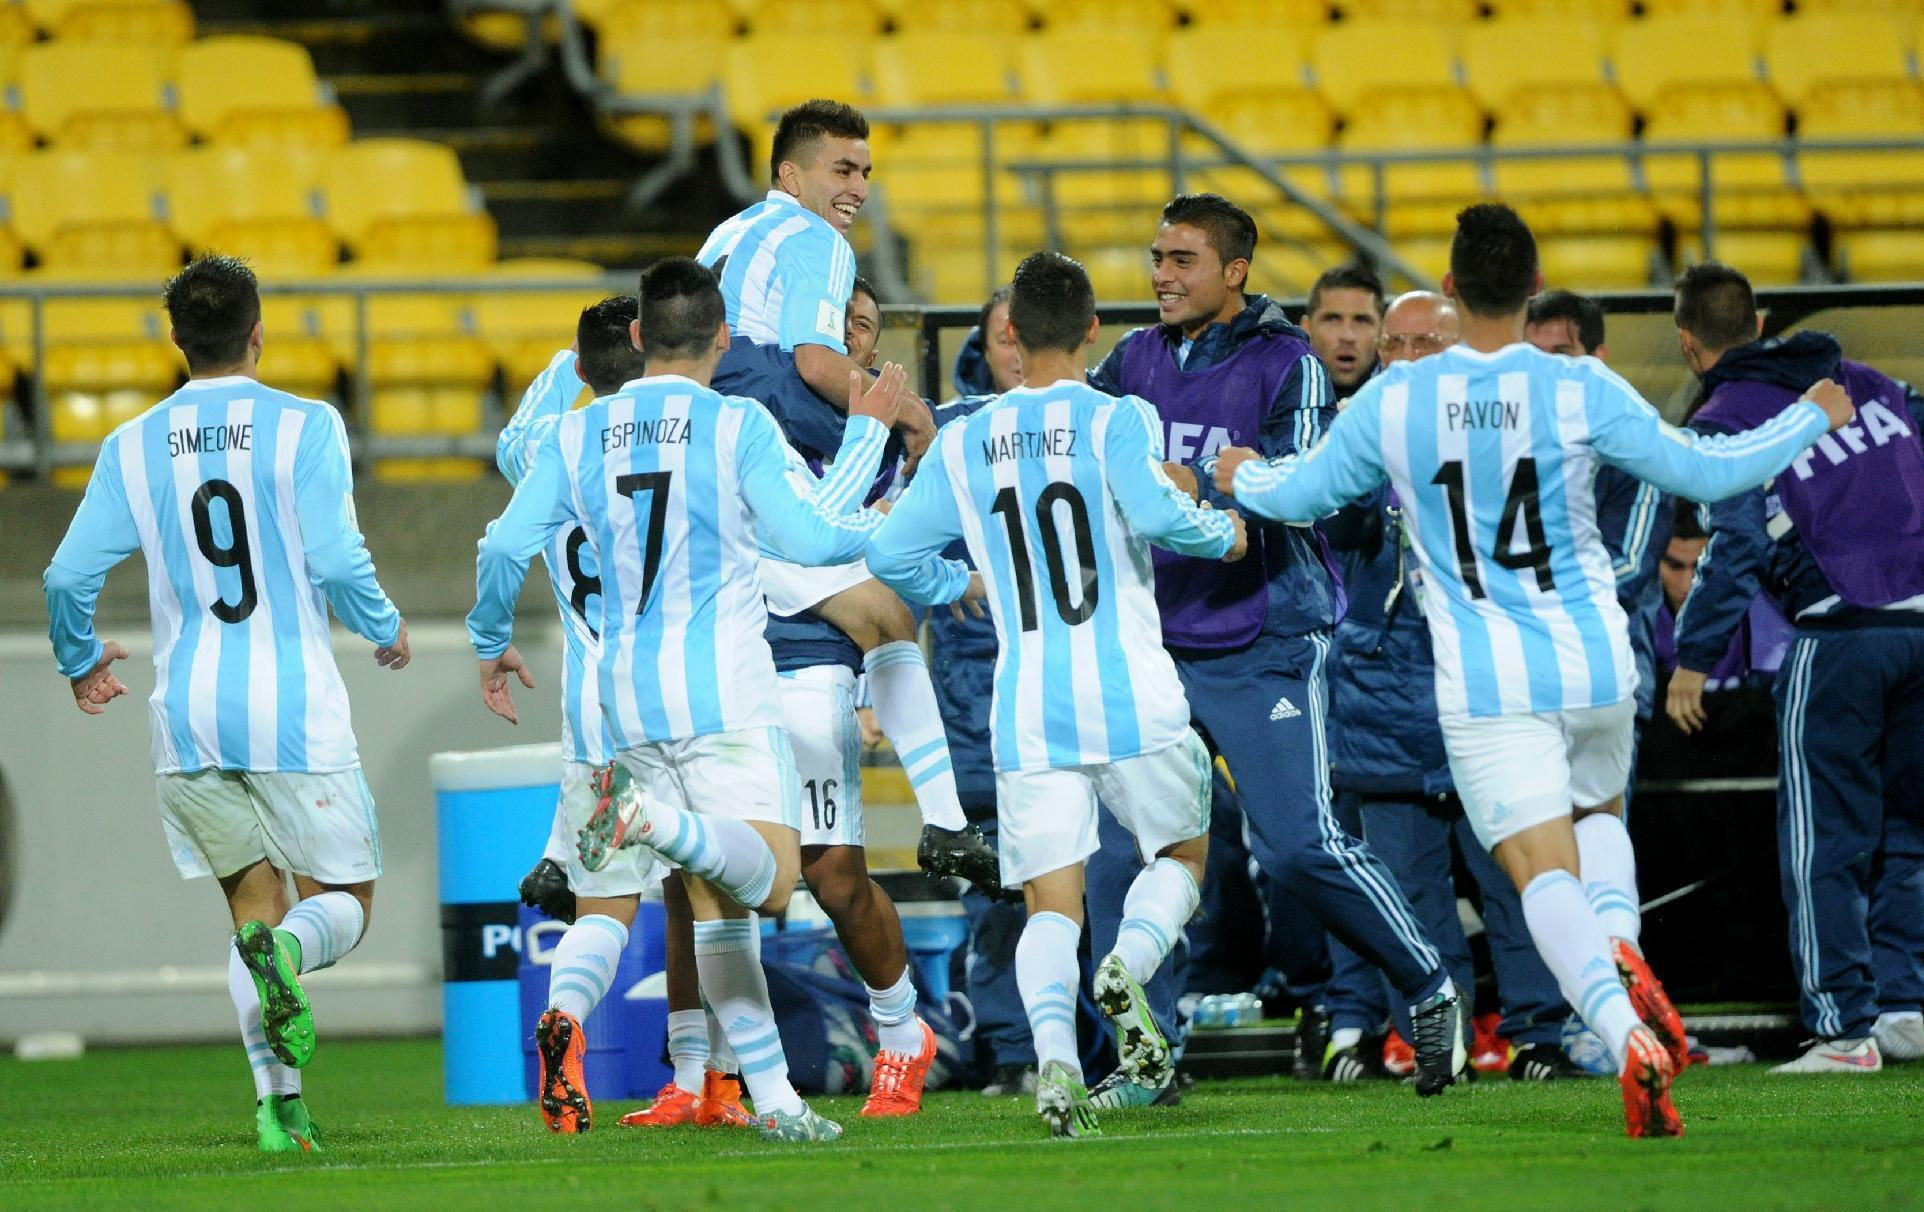 Panama holds Argentina to draw at Under-20 World Cup